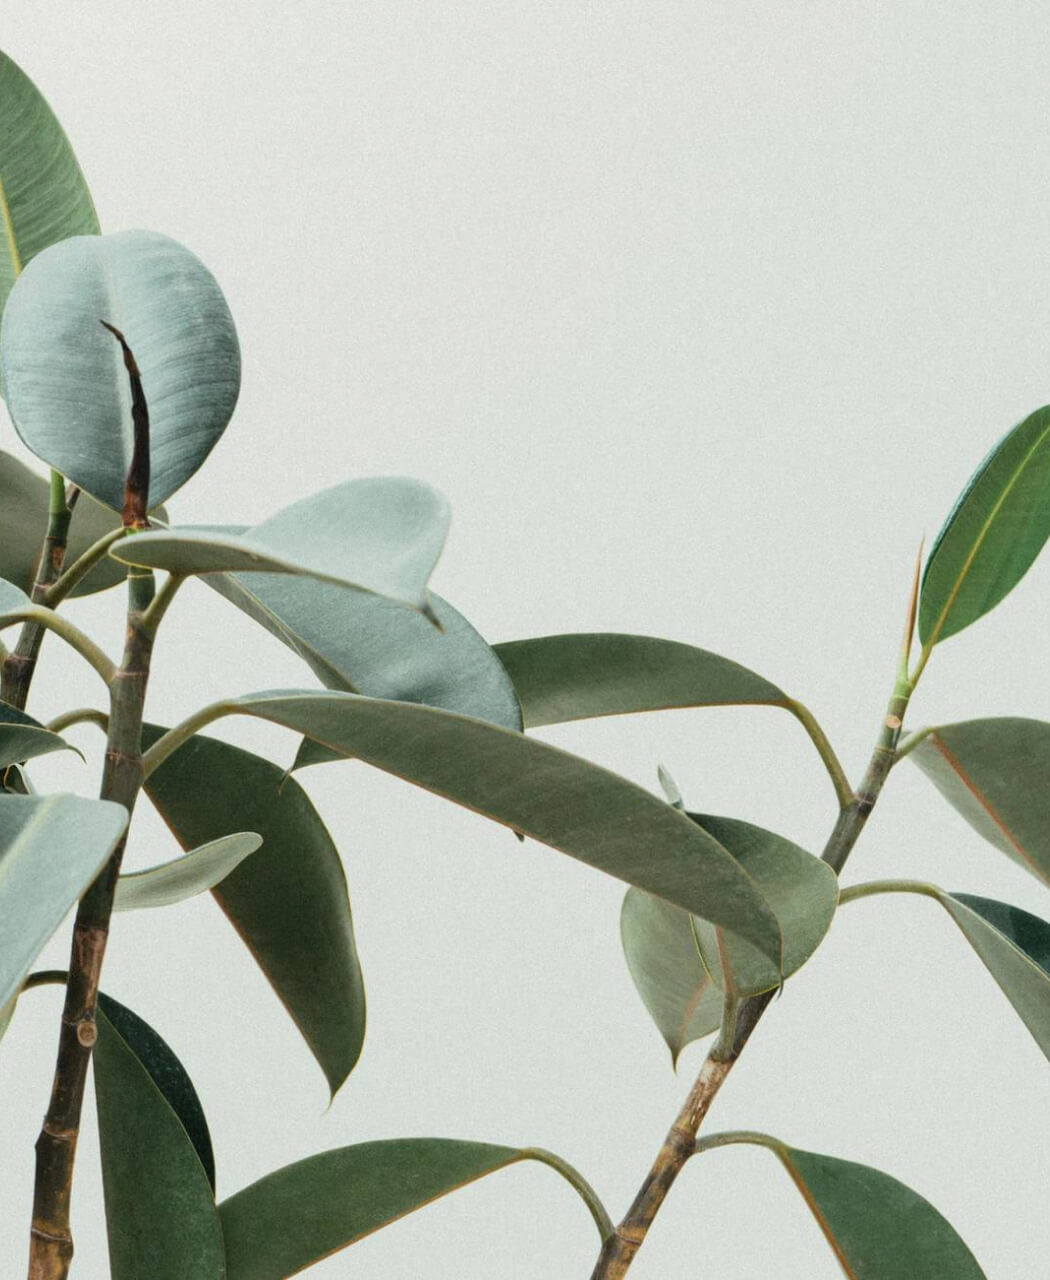 A zommed image of Ficus plant in front of a green wall.